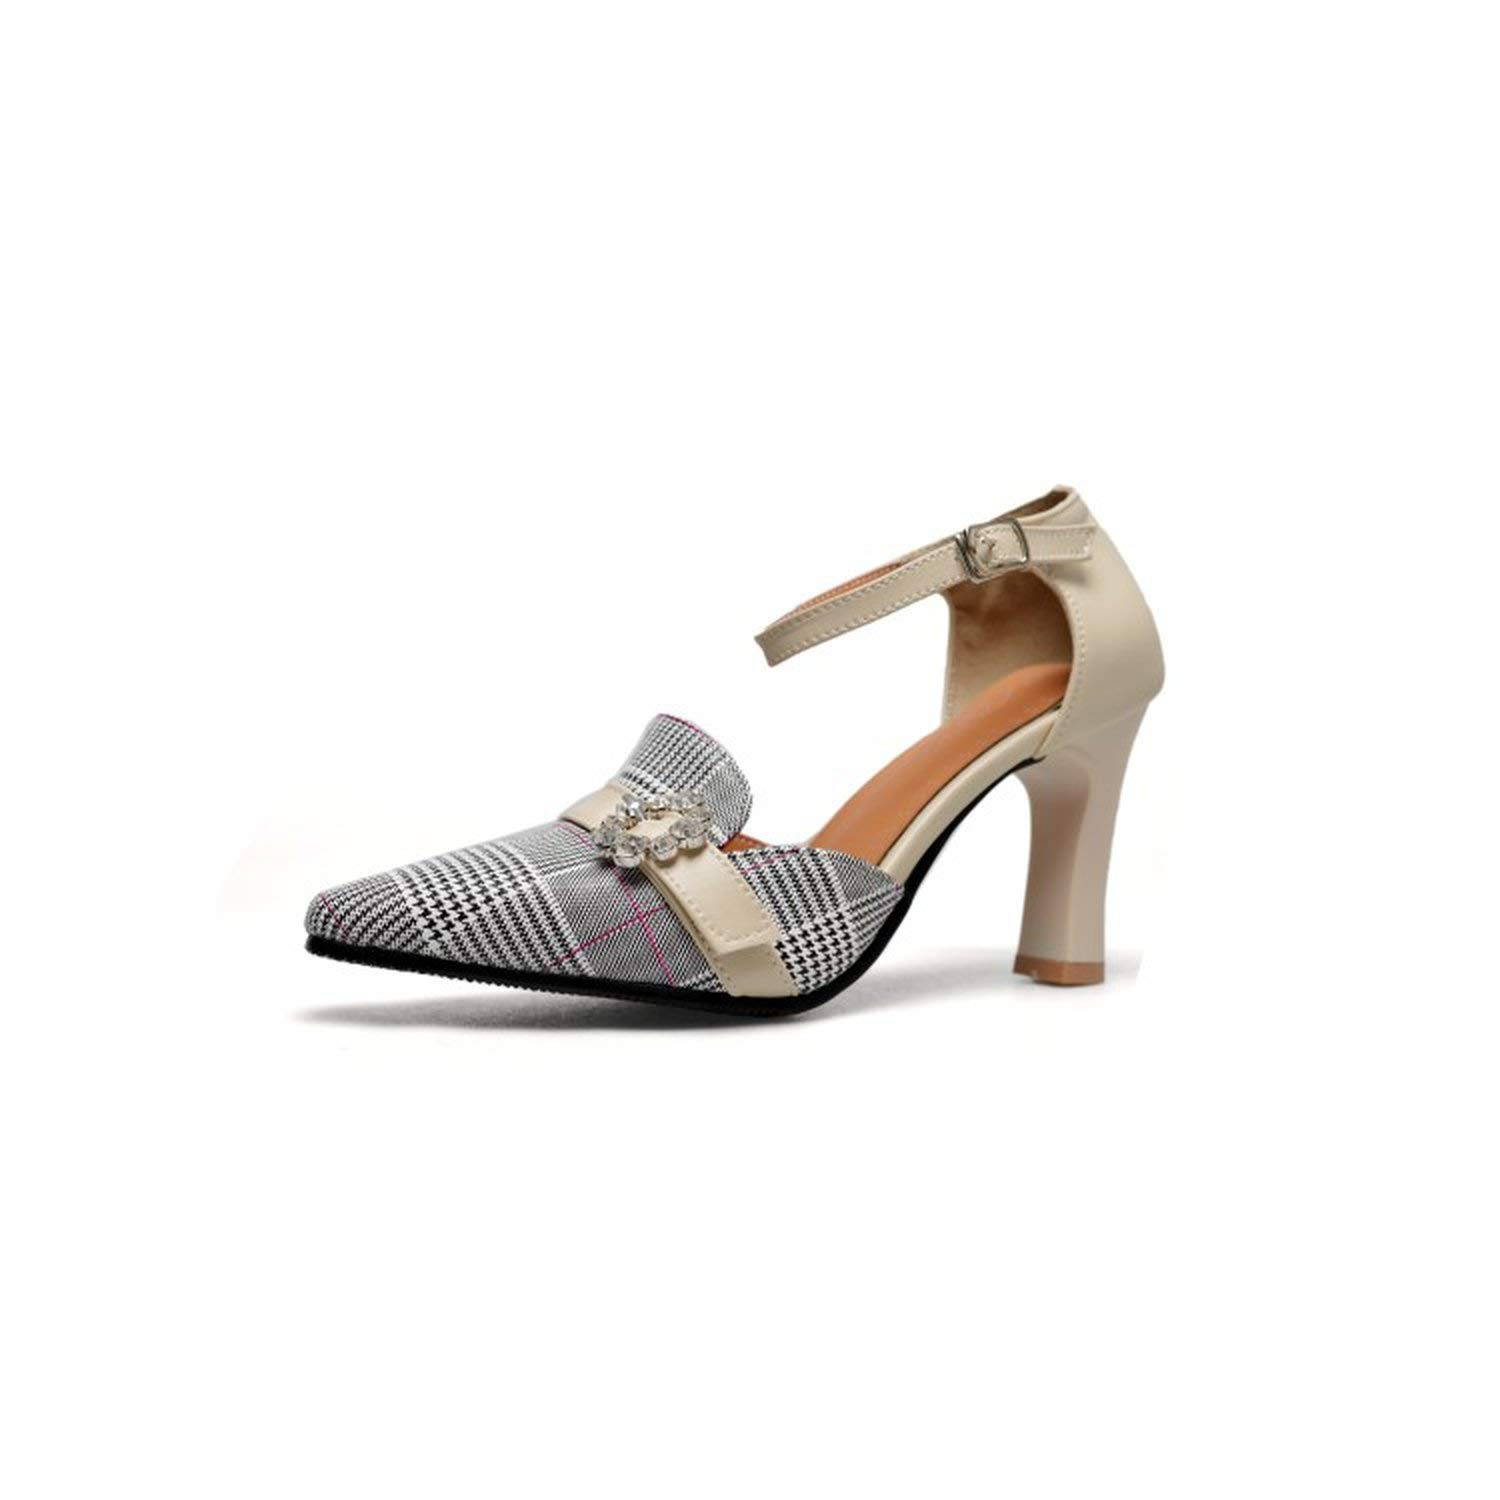 As photo Women Pumps Sandals Jacquard Fabric Plaid High Heel Pointed Toe shoes Party Buckle